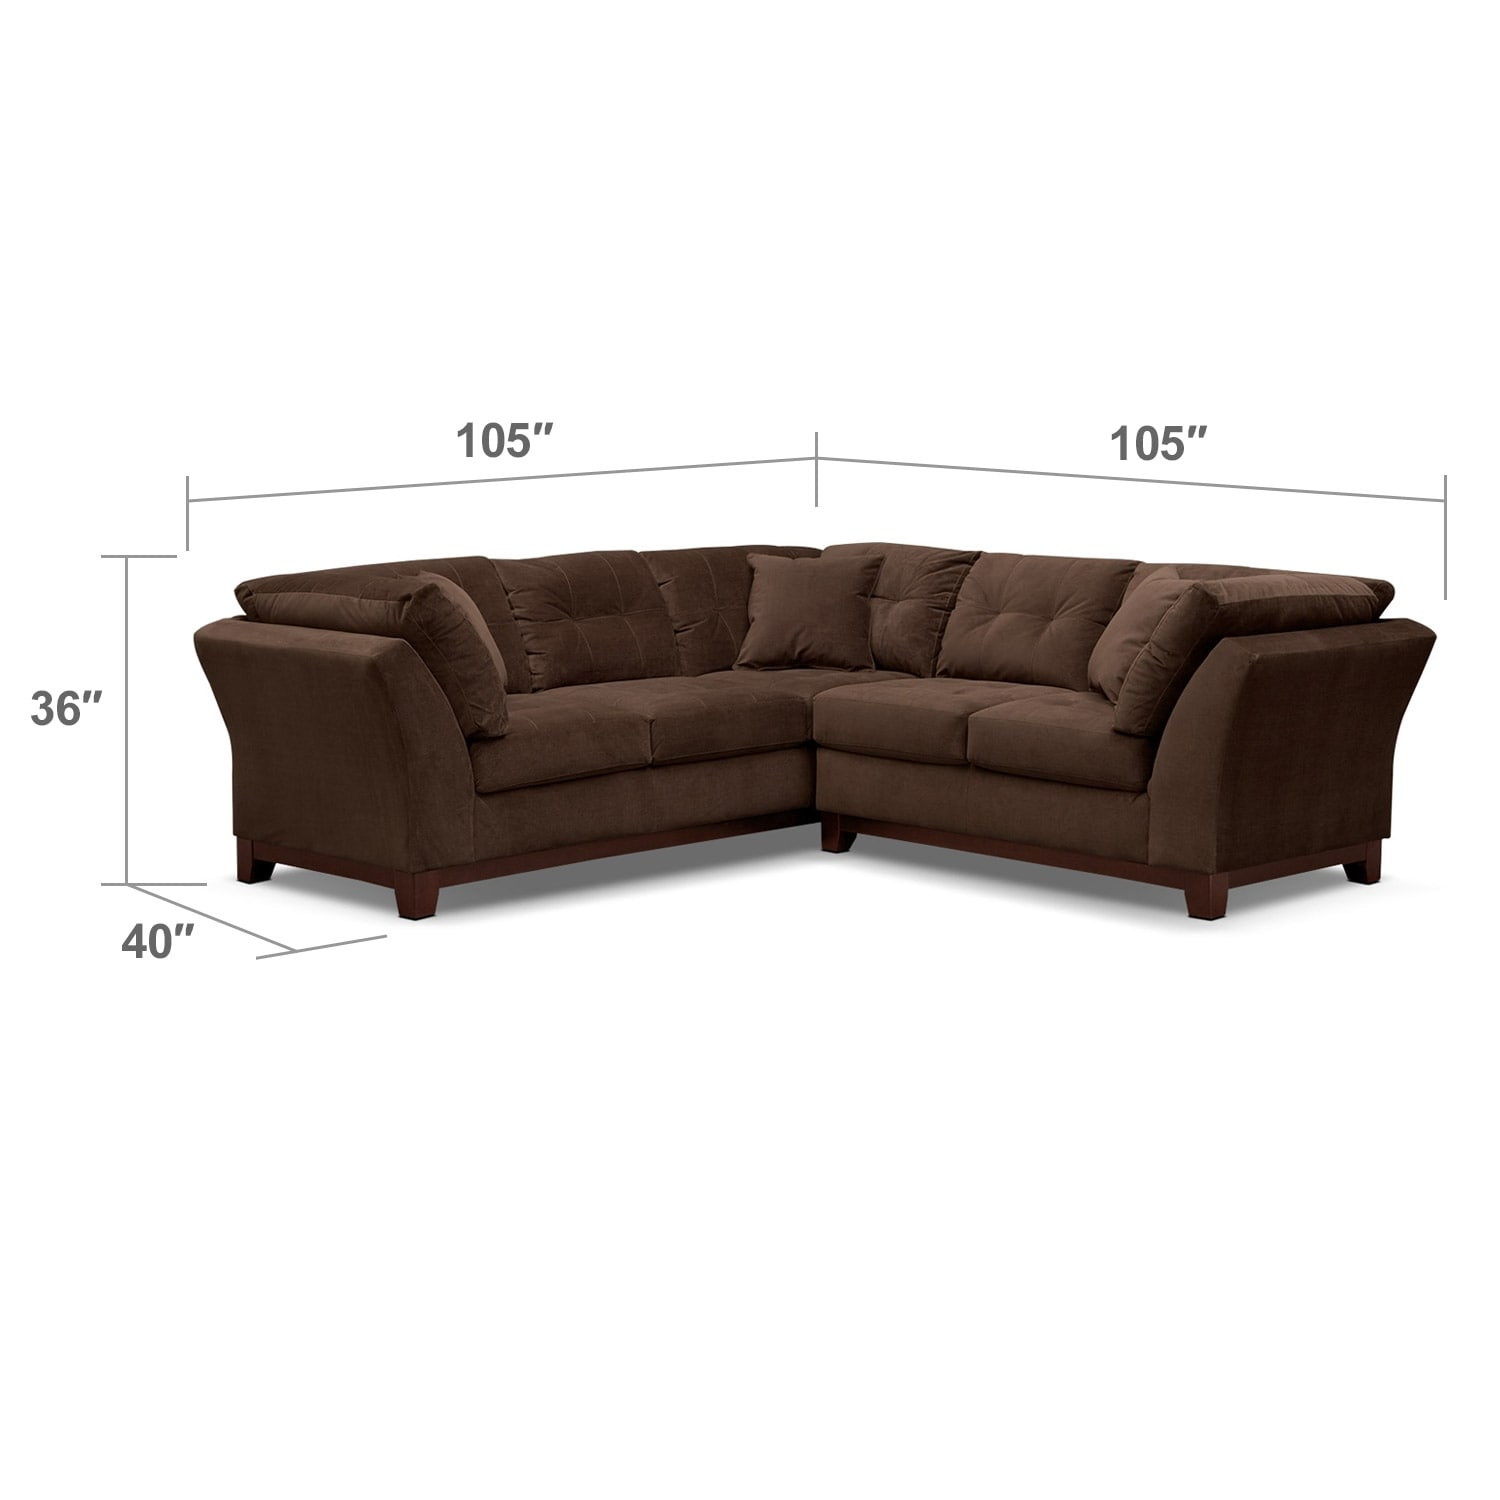 Living Room Furniture - Solace Chocolate II 2 Pc. Sectional (Alternate II Reverse)